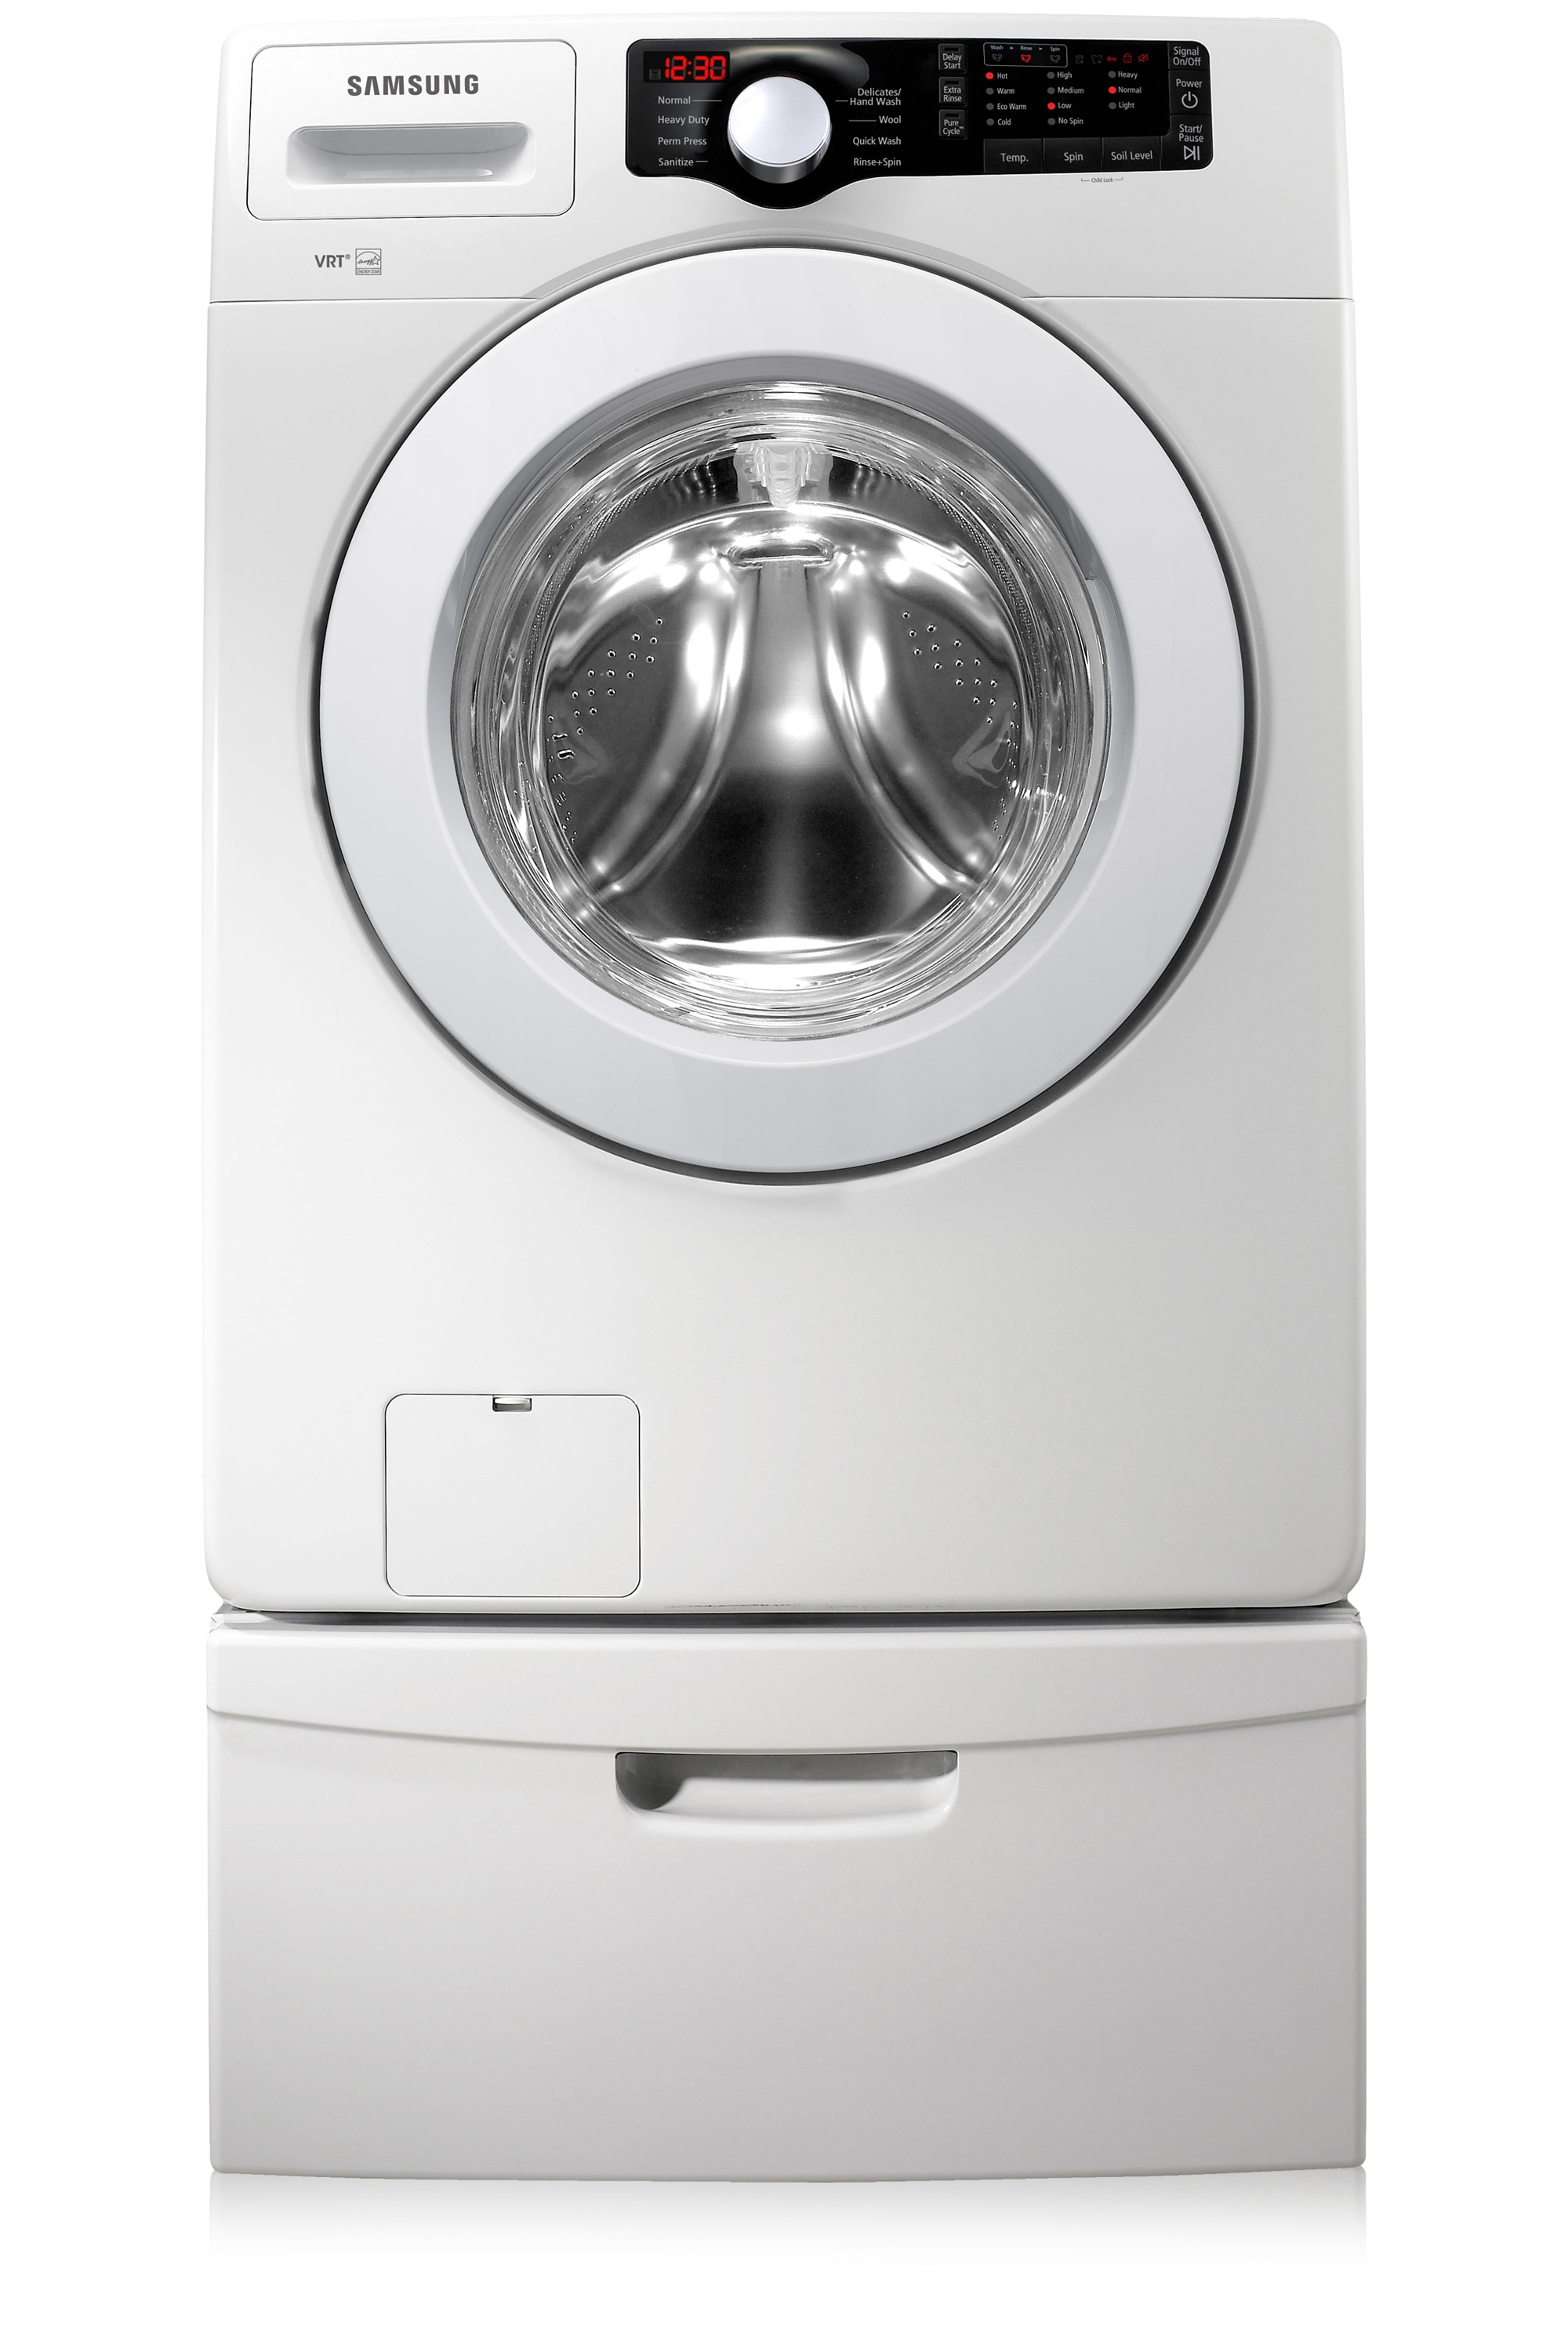 Samsung Front Load Washer Wf361bvbewr 4 1 Cu Ft Large Capacity Front Load Washer White